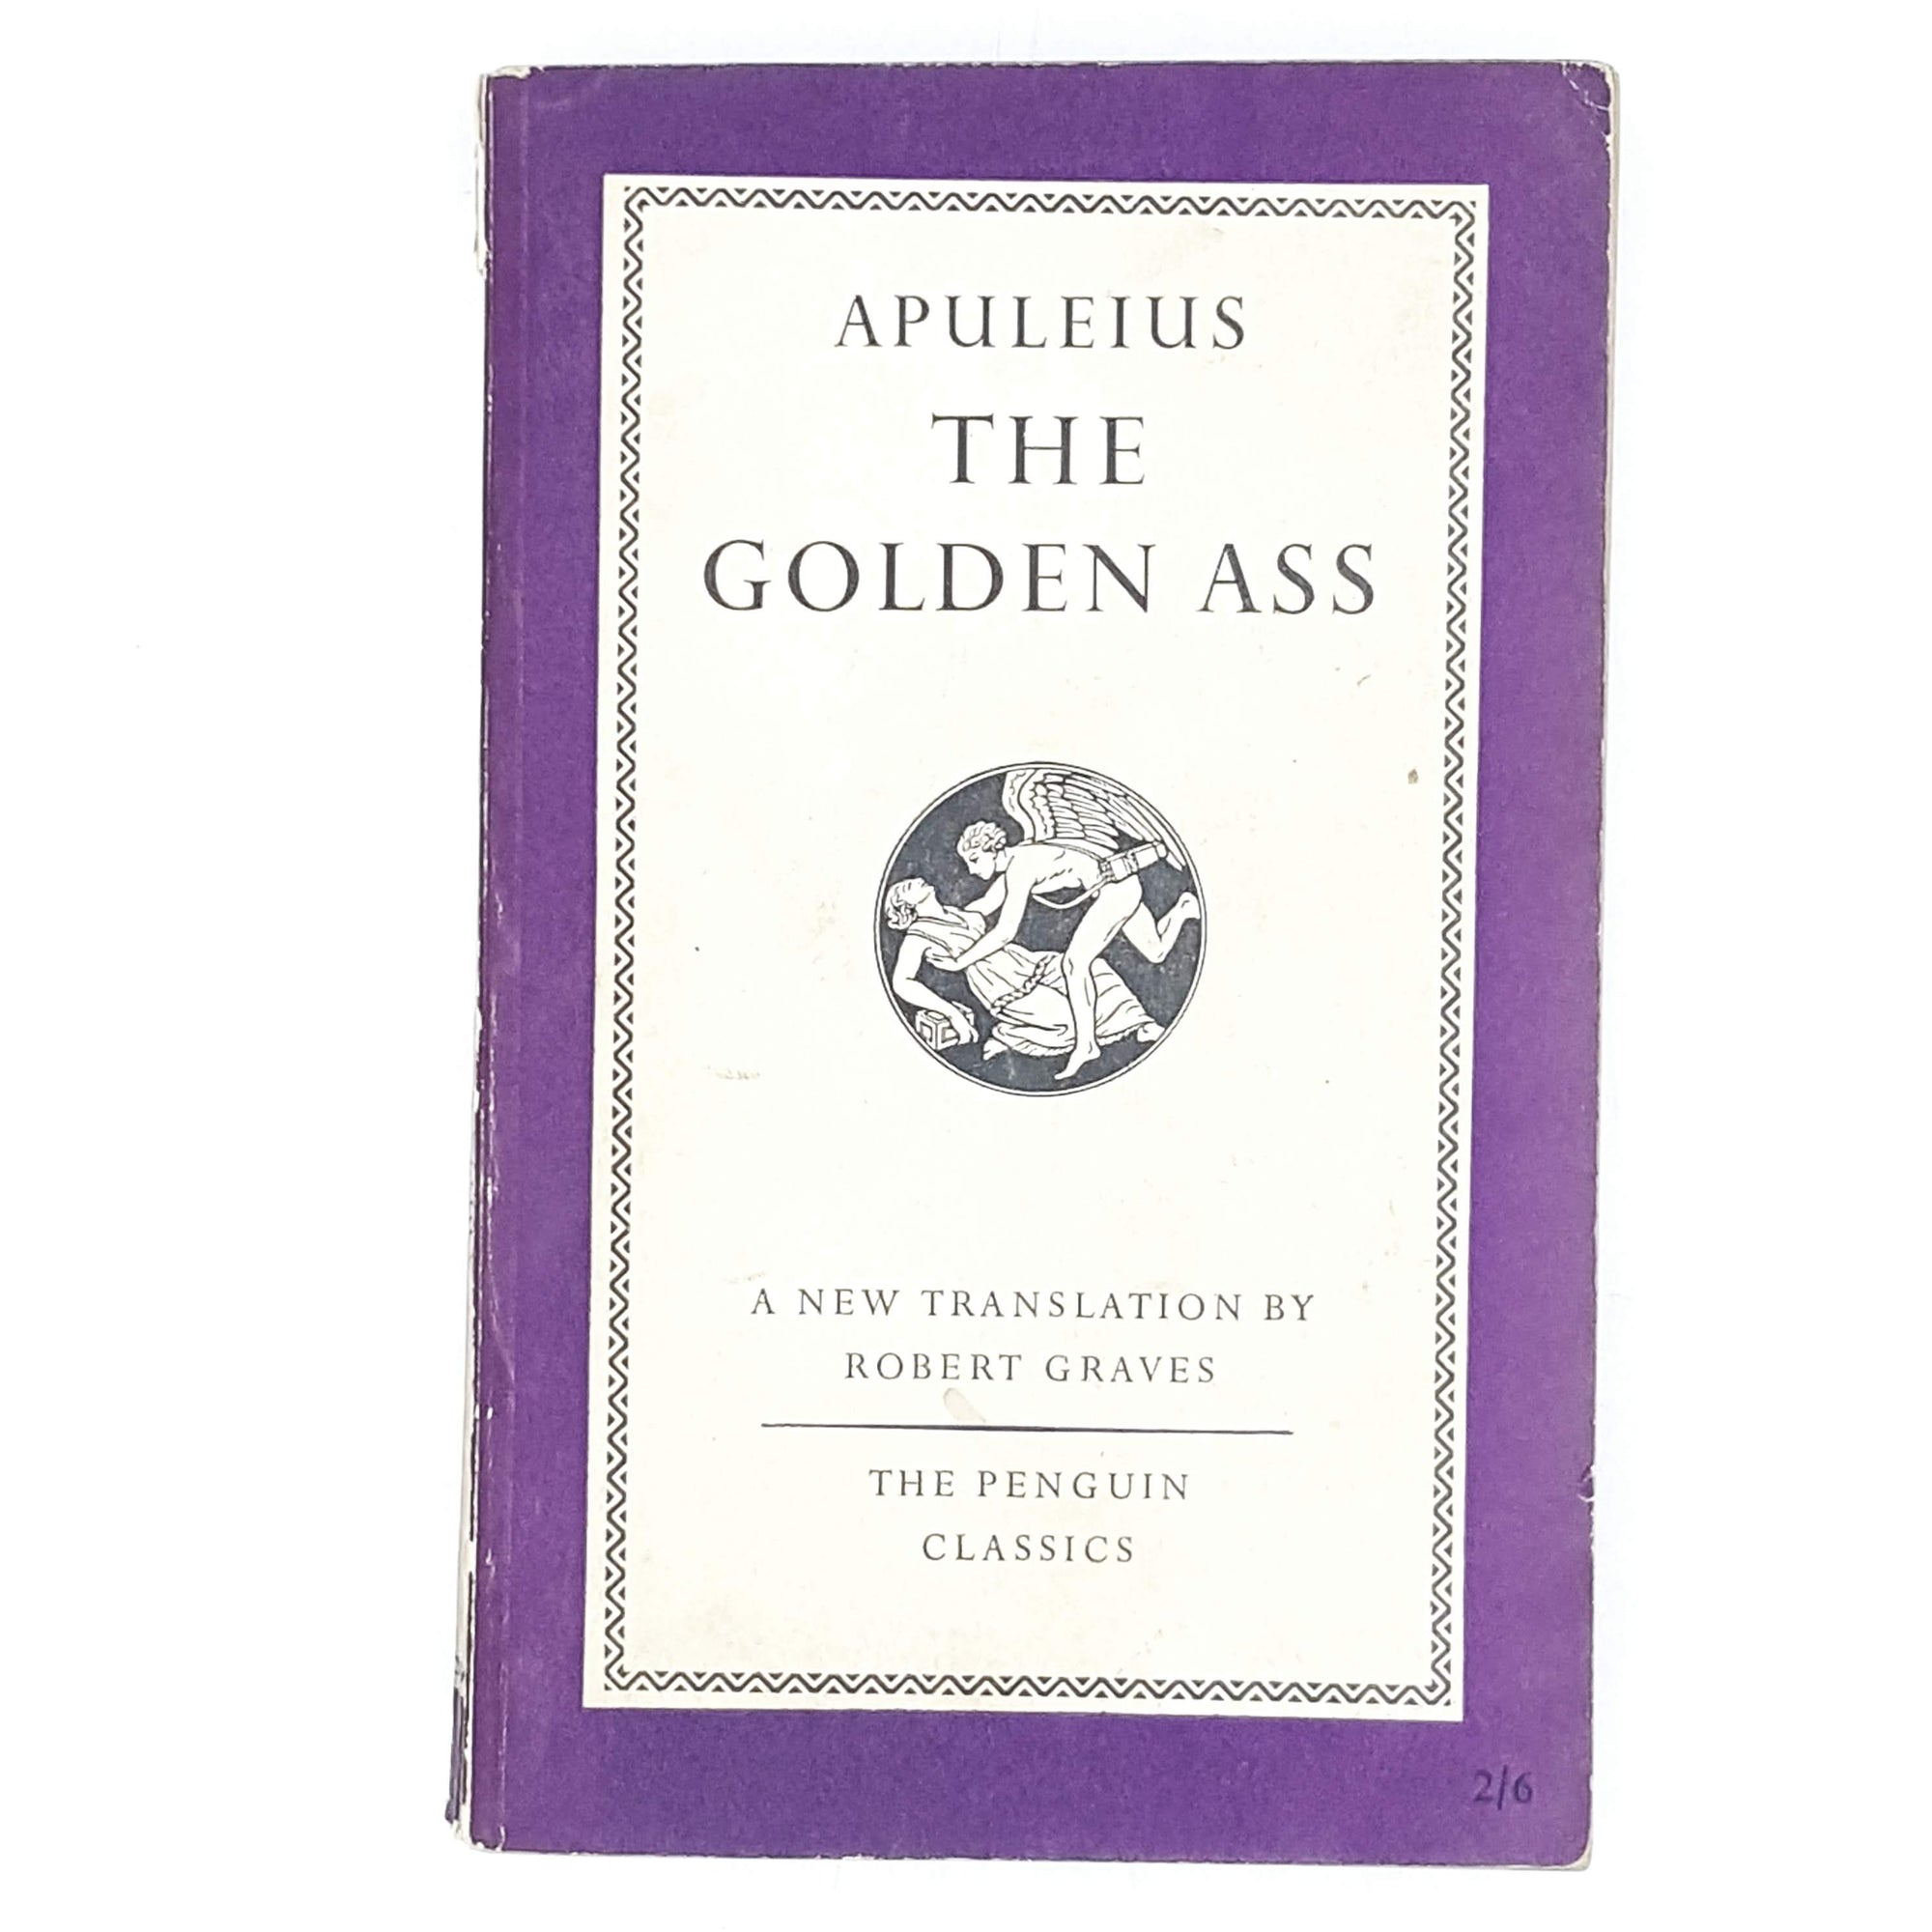 Vintage Penguin The Golden Ass by Apuleius 1954